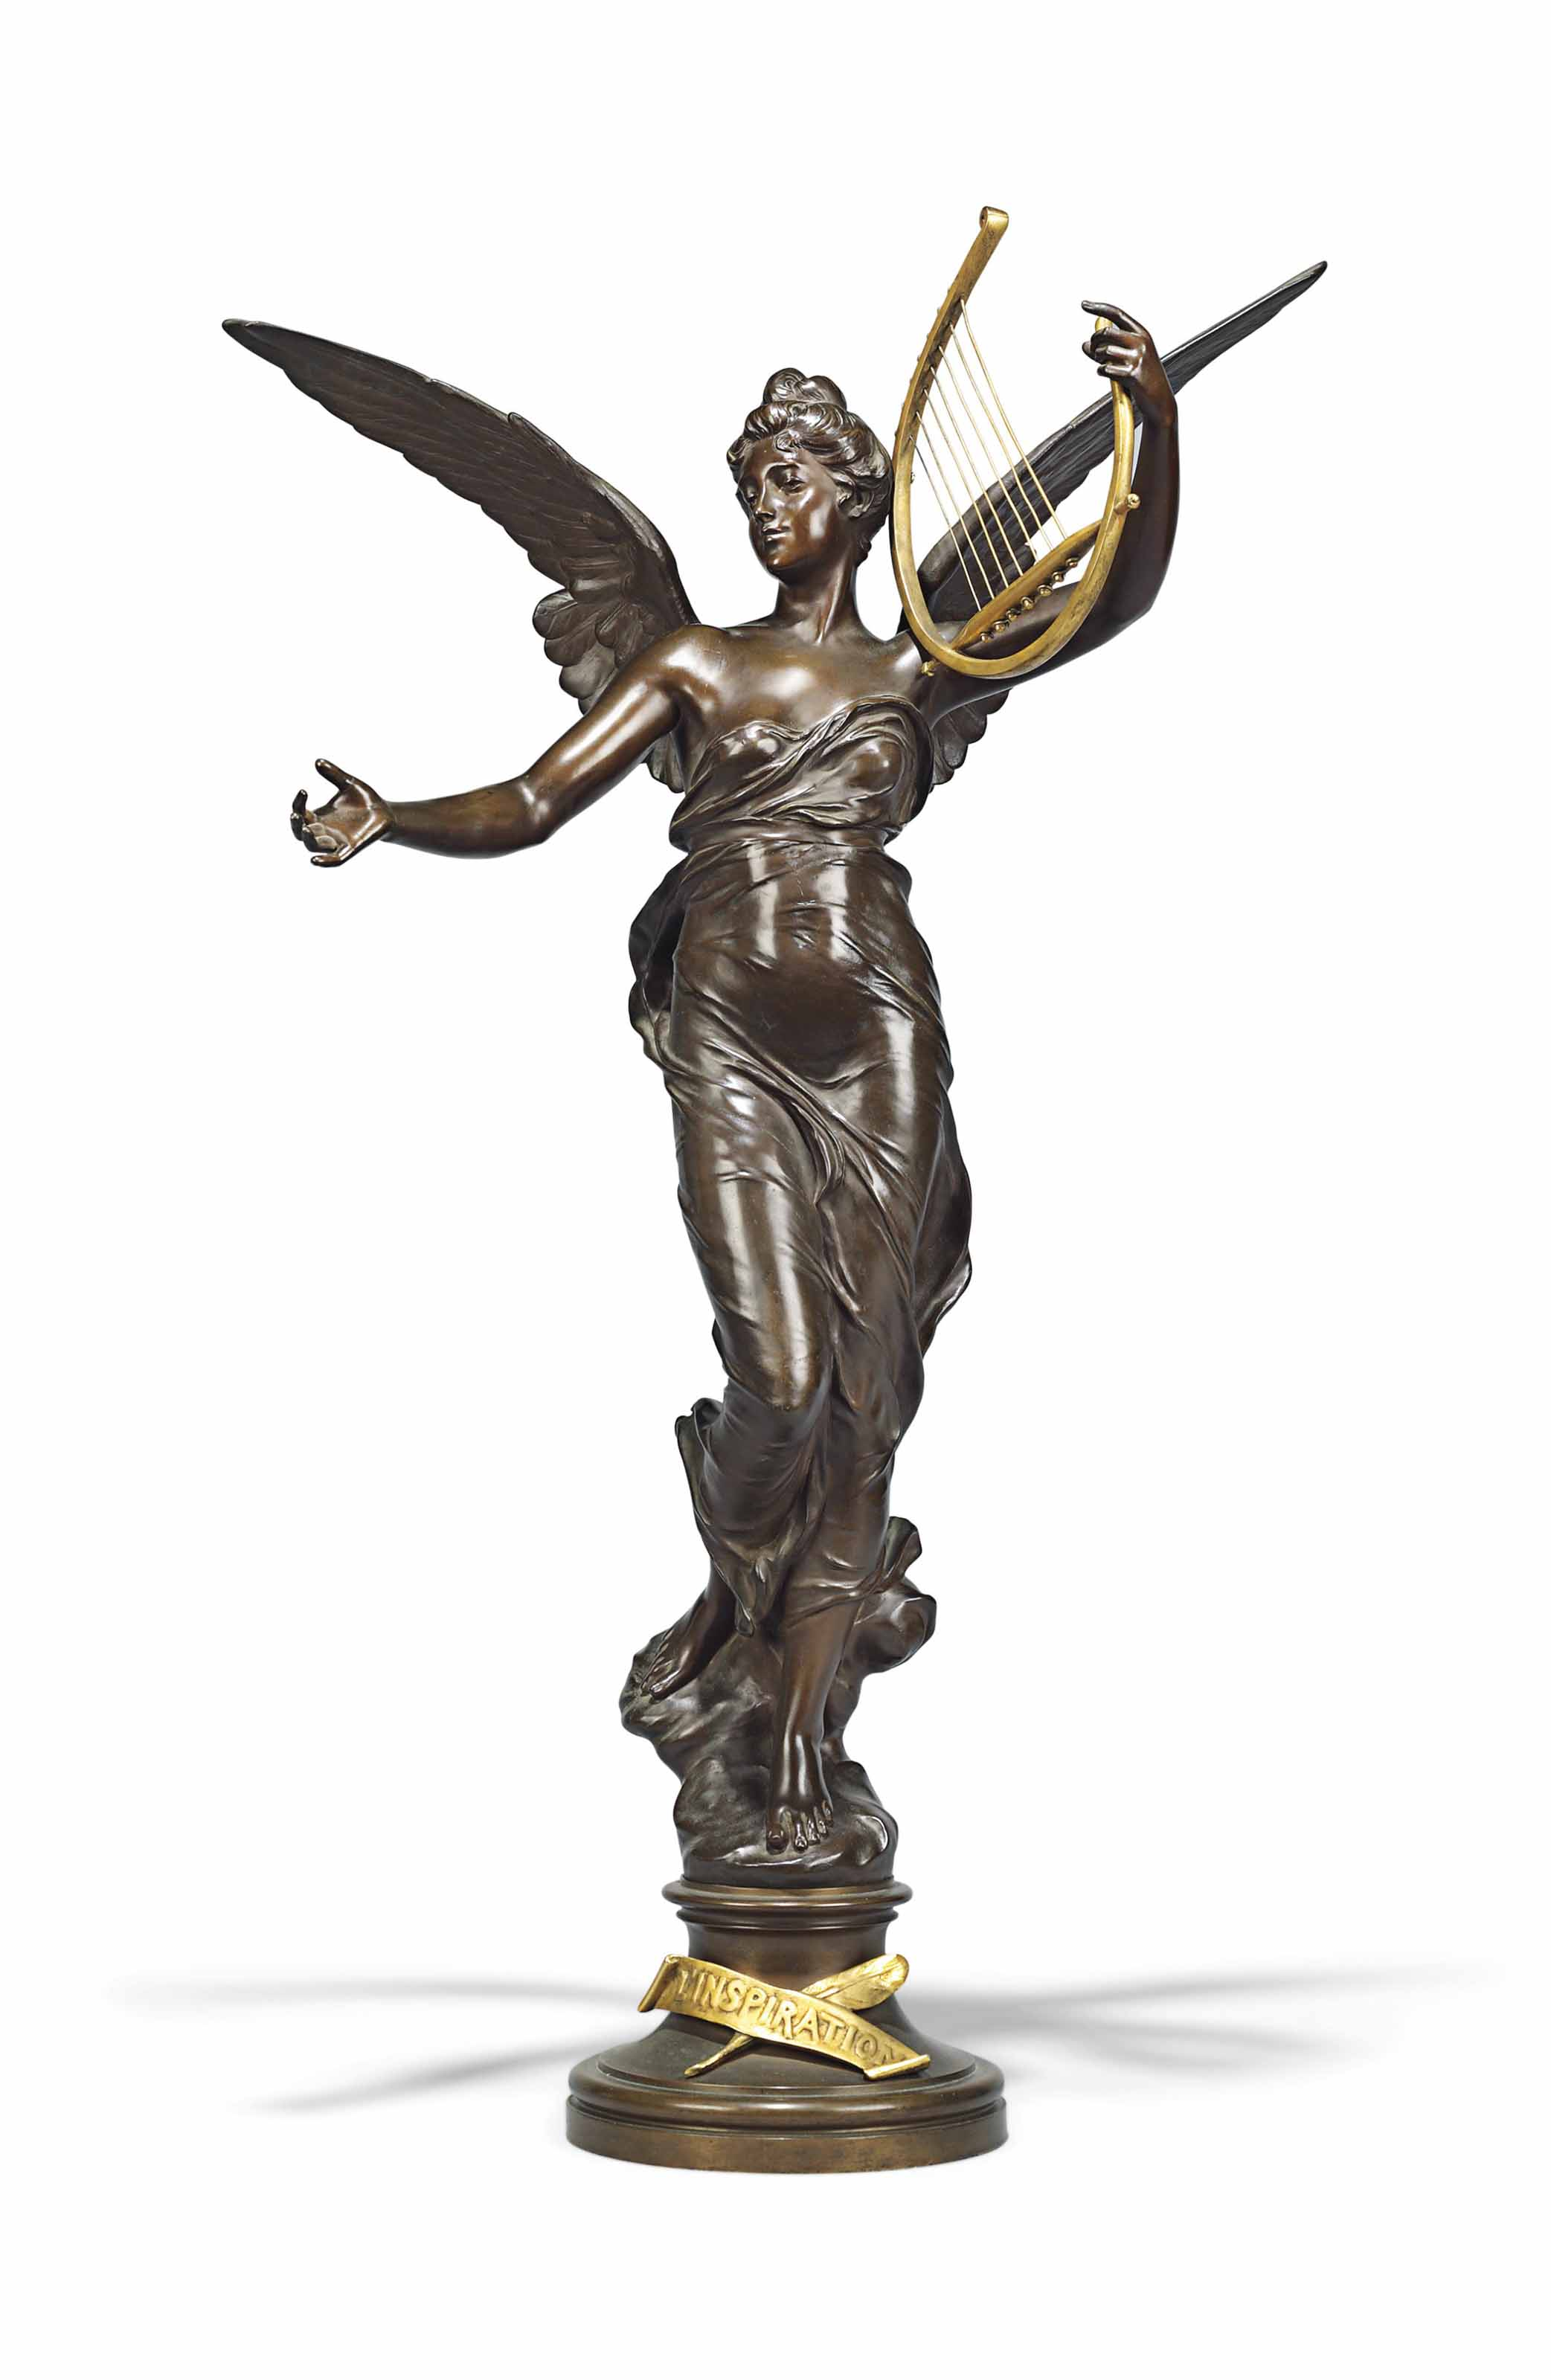 A FRENCH GILT AND PATINATED-BRONZE FIGURE ENTITLED, 'L'INSPIRATION' (INSPIRATION)